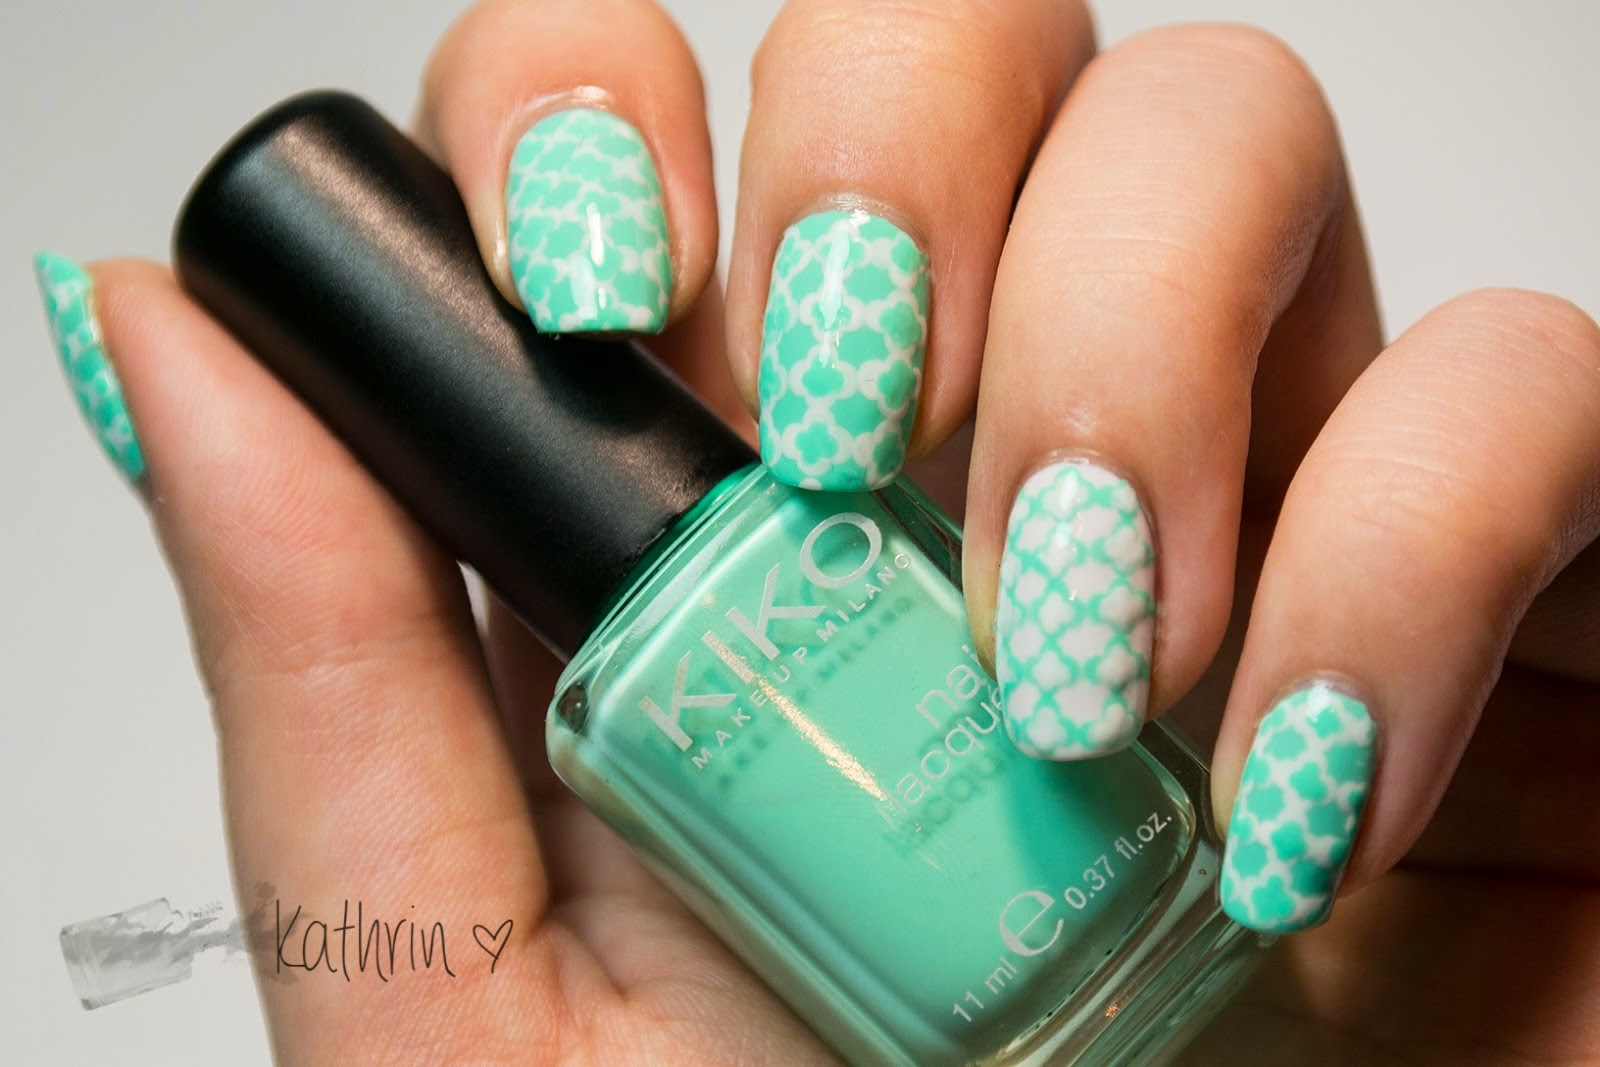 http://rainpow-nails.blogspot.de/2014/11/inspired-by-fabric-mint-quatrefoil.html